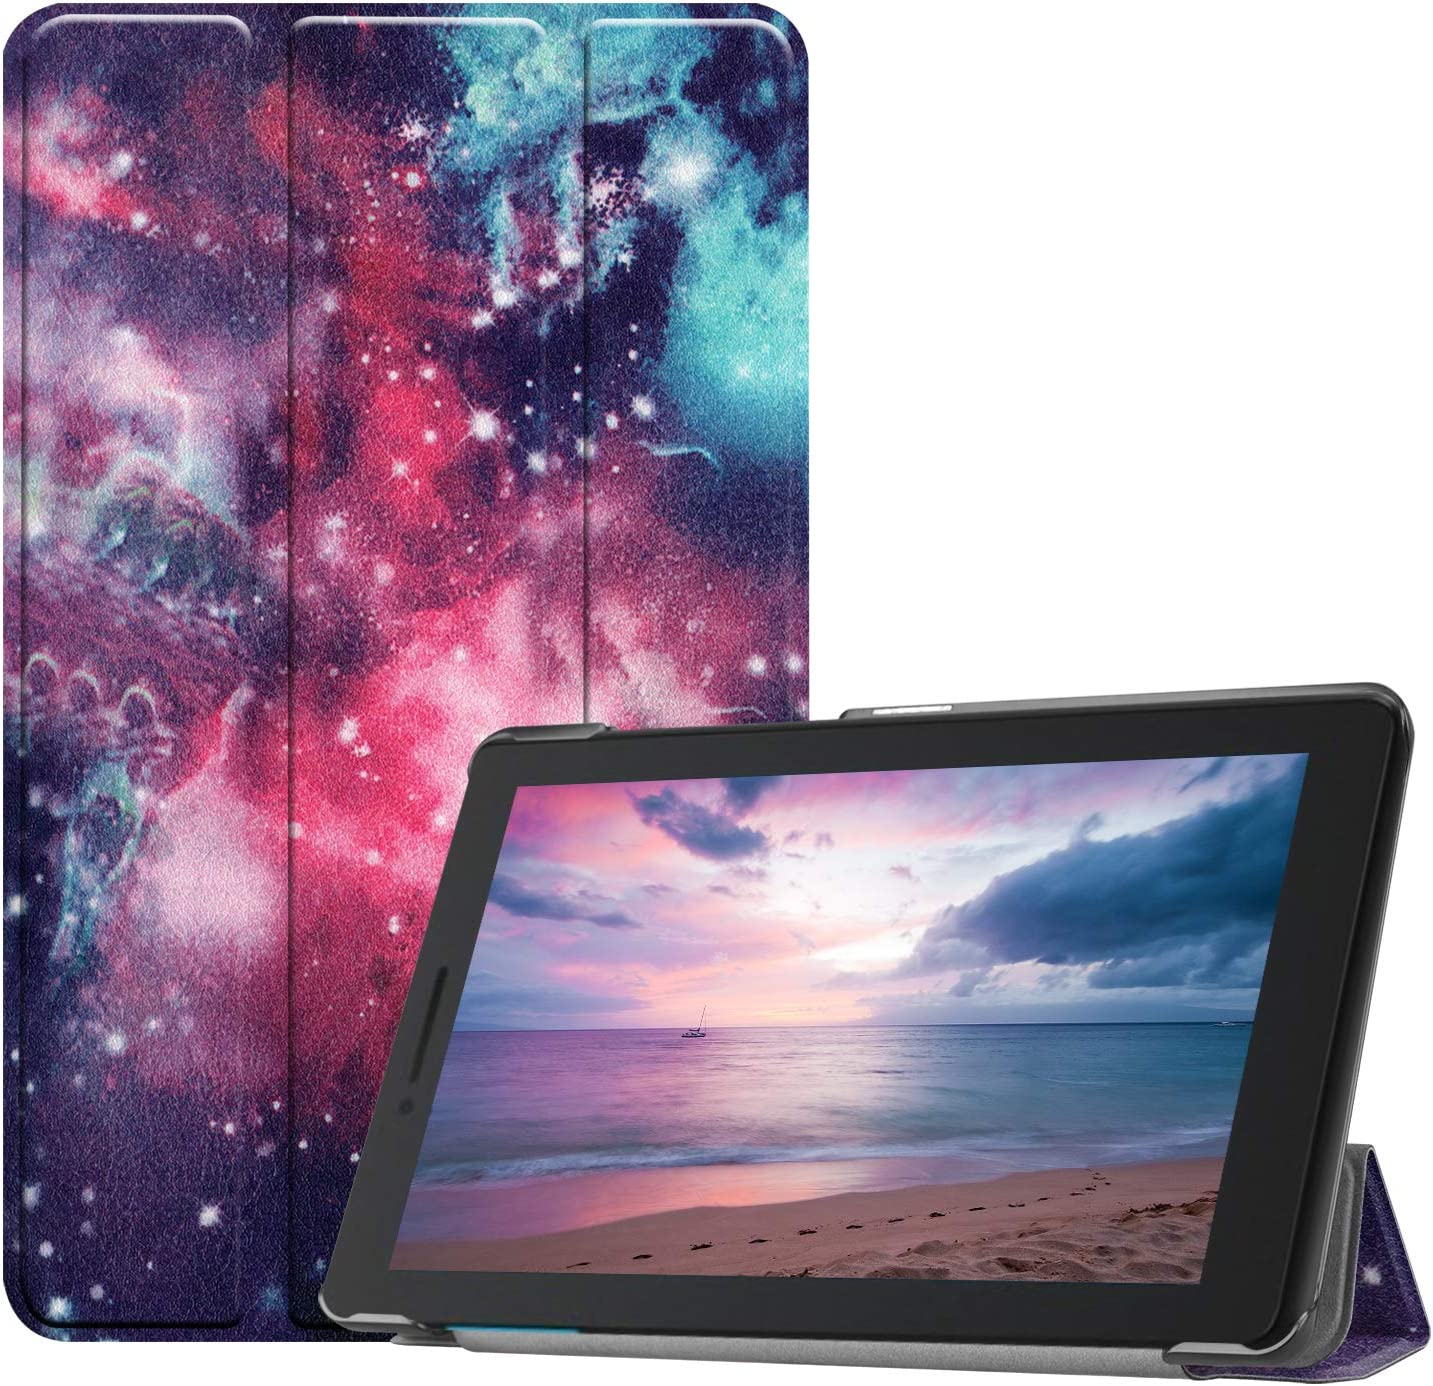 Slim Case for Lenovo Tab E8 TB-8304F, Gylint Smart Case Trifold Stand for Lenovo Tab E8 TB-8304F 8 Inch Tablet (Outer Space)